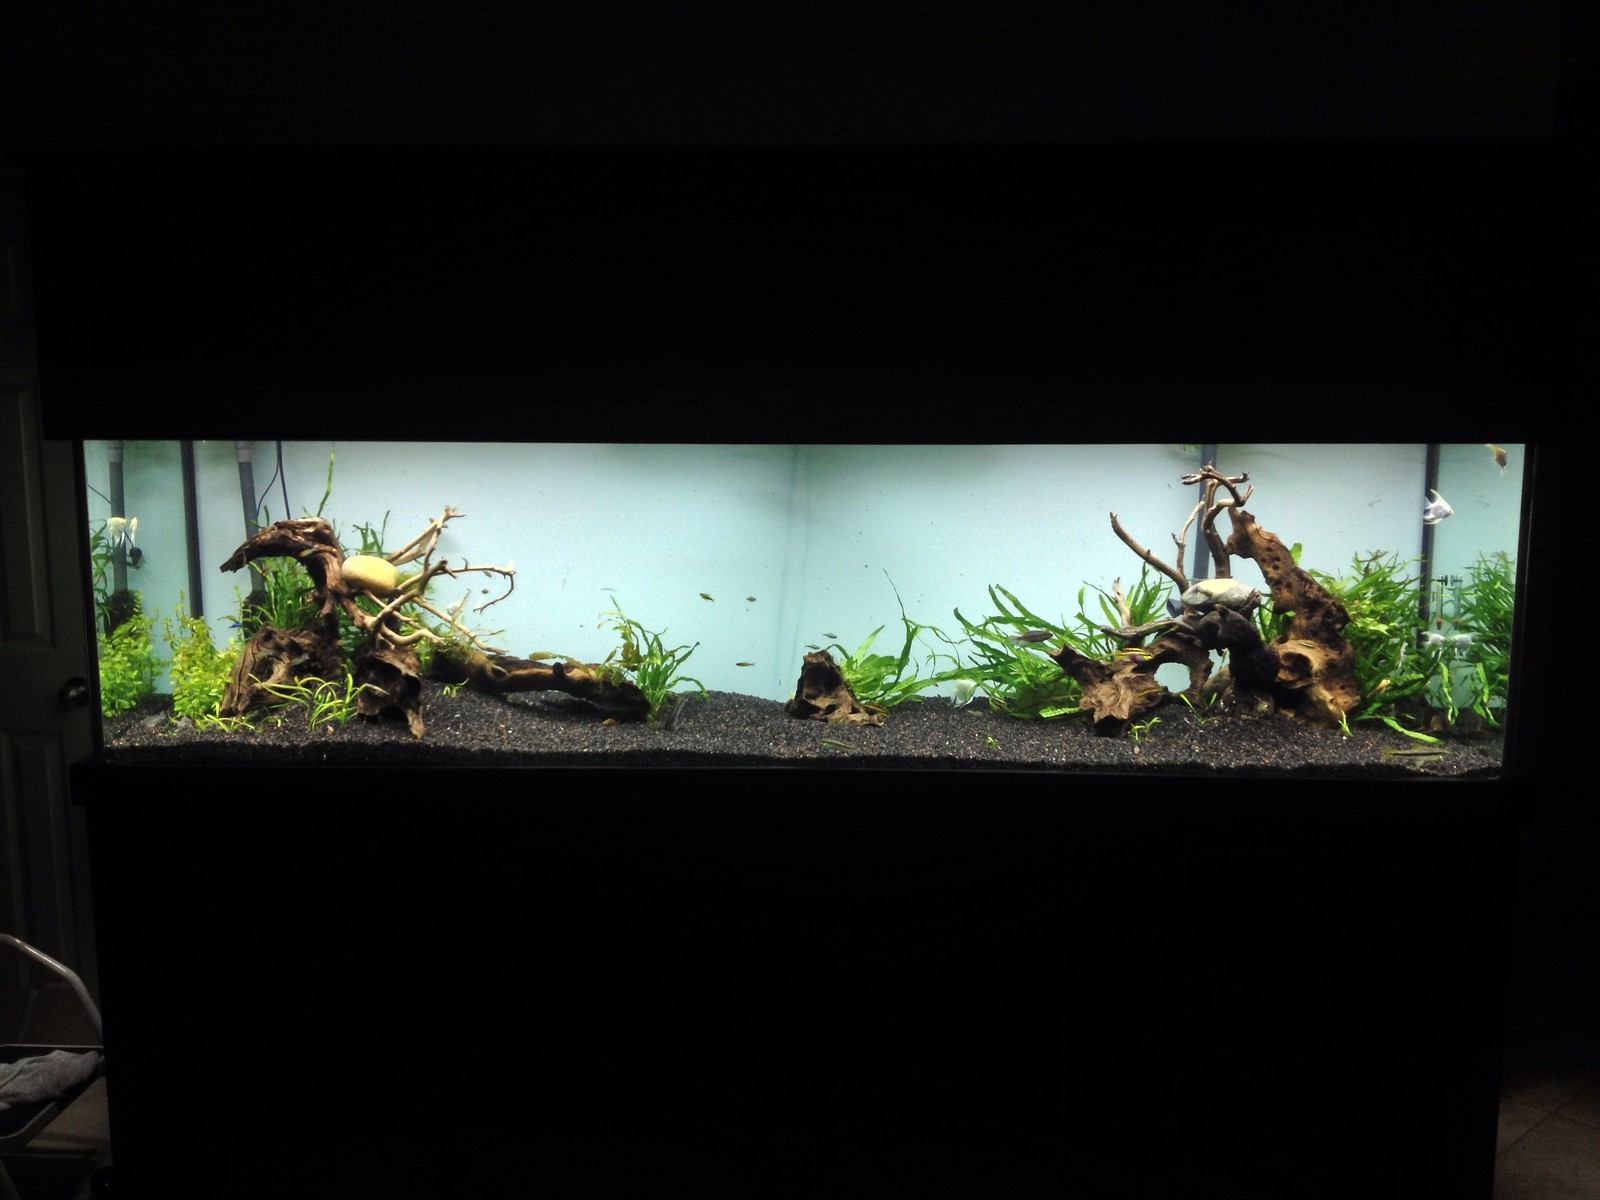 New house new tank 240 gallon adventure Page 2 The Planted